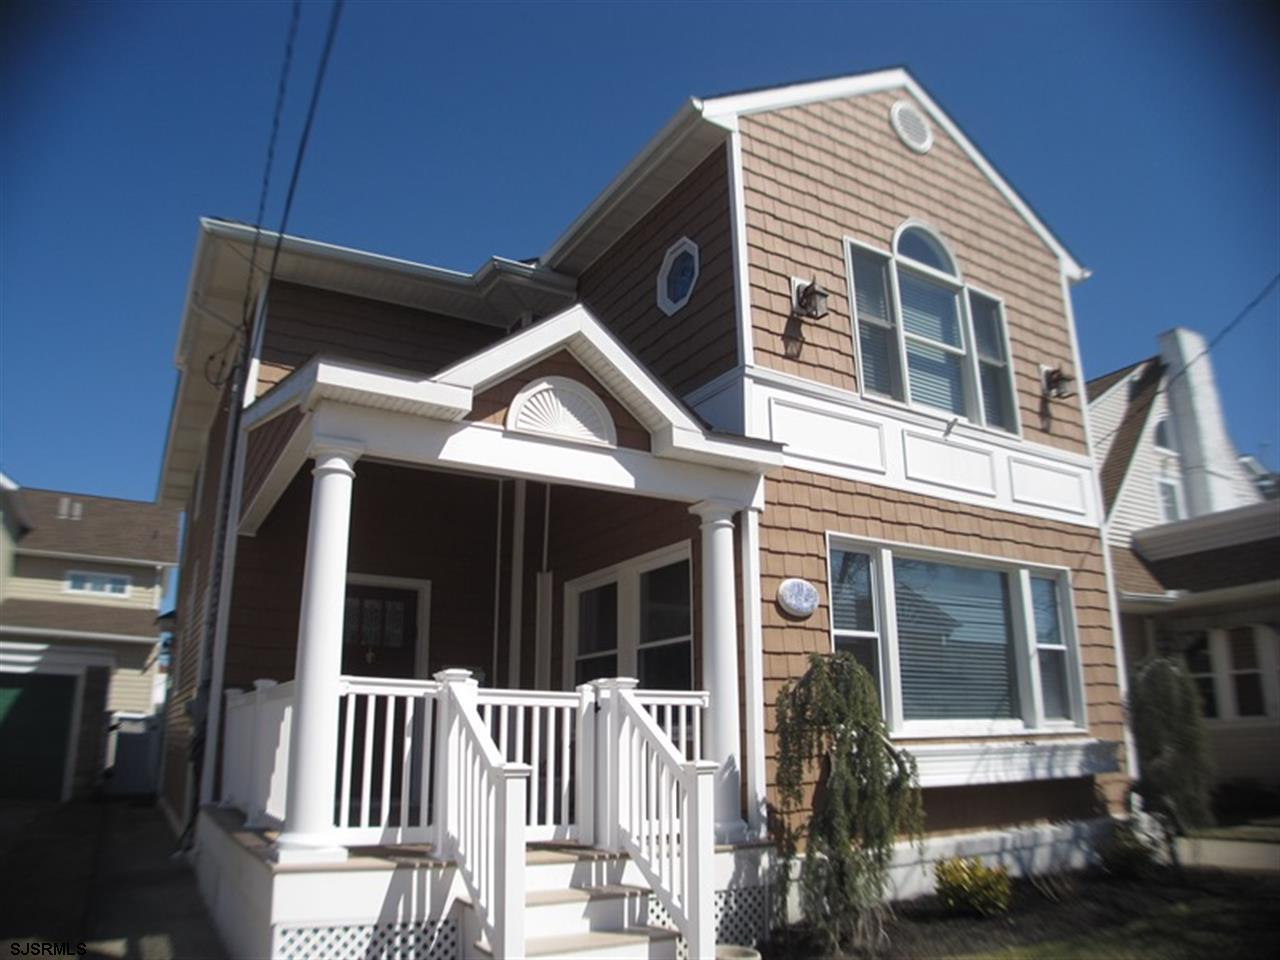 Rental Homes for Rent, ListingId:27453468, location: 11 N Haverford Ave Margate City 08402